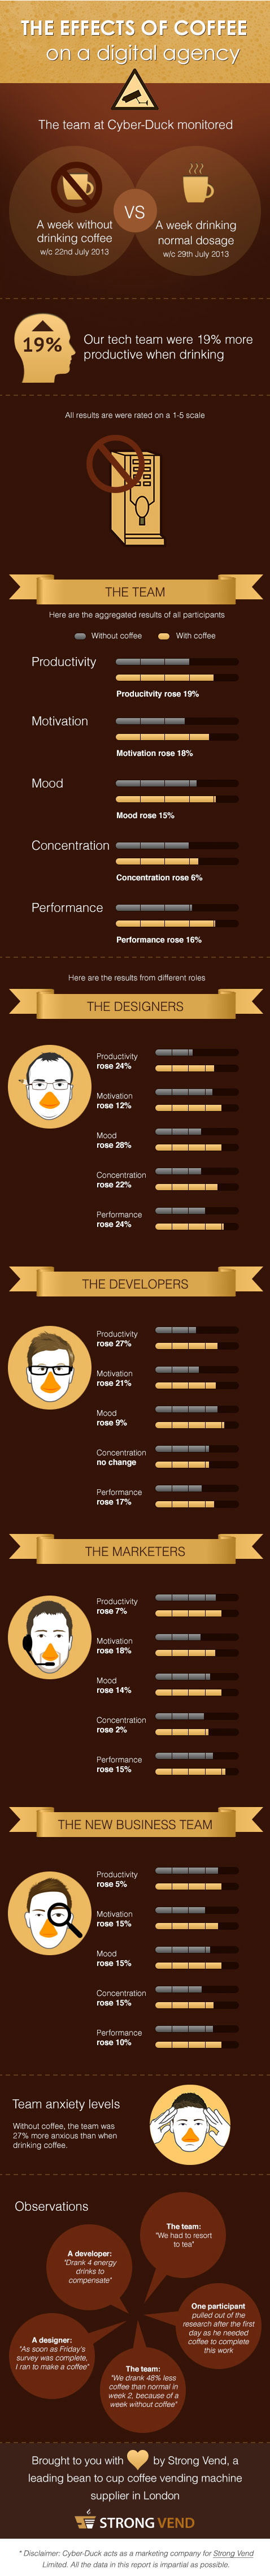 Coffee-Infographic-for-Enviable-Workplace